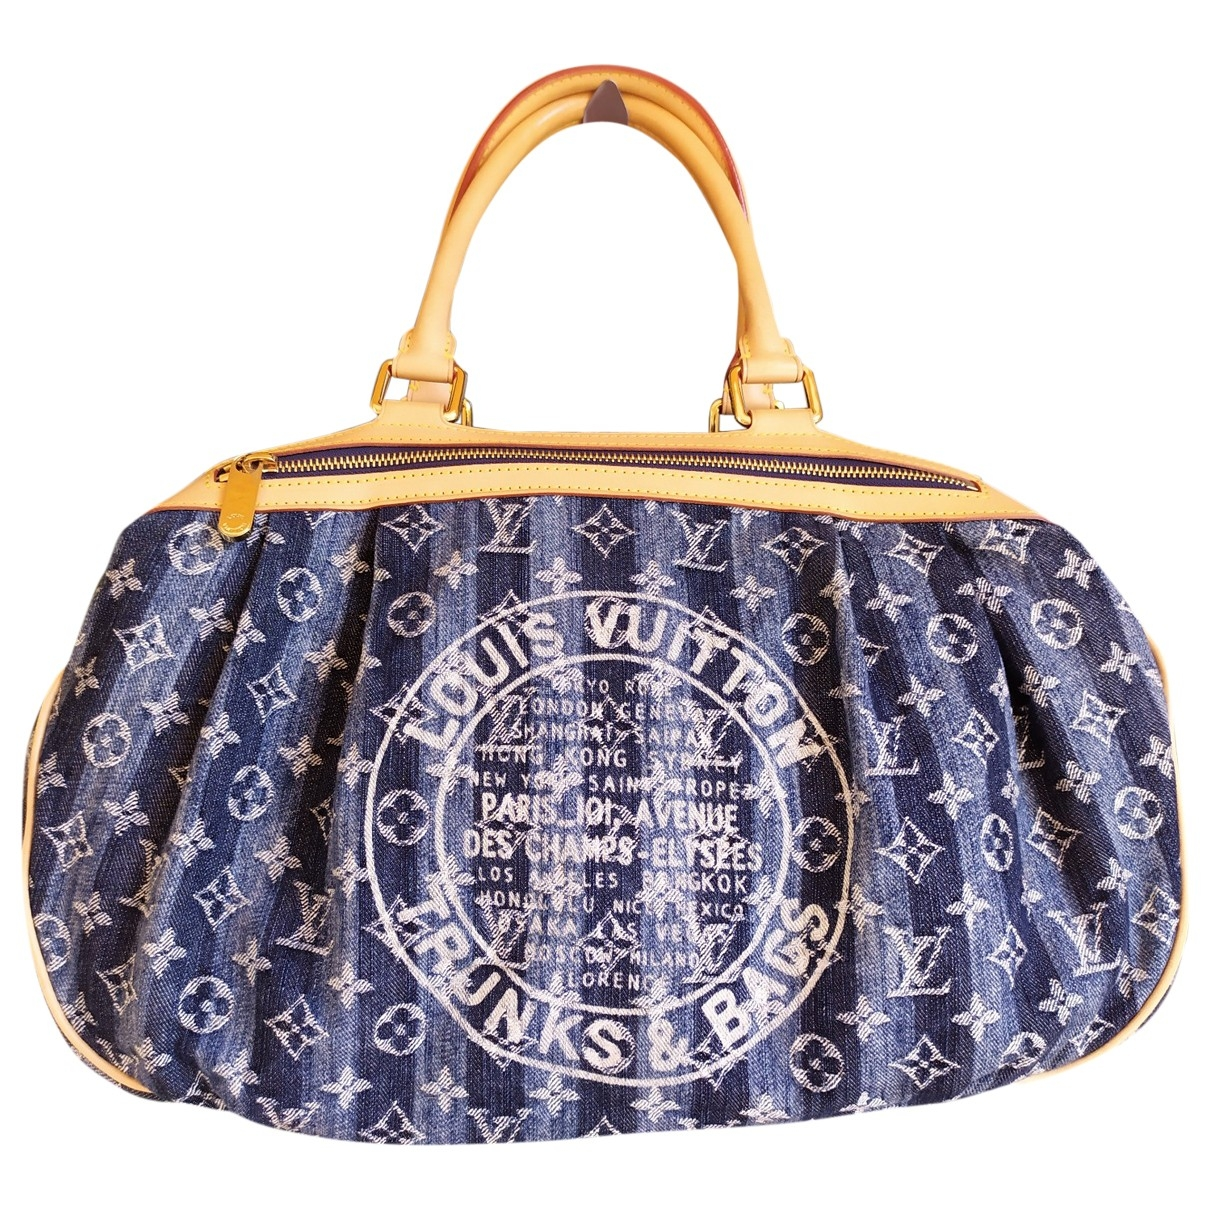 Louis Vuitton \N Blue Denim - Jeans handbag for Women \N